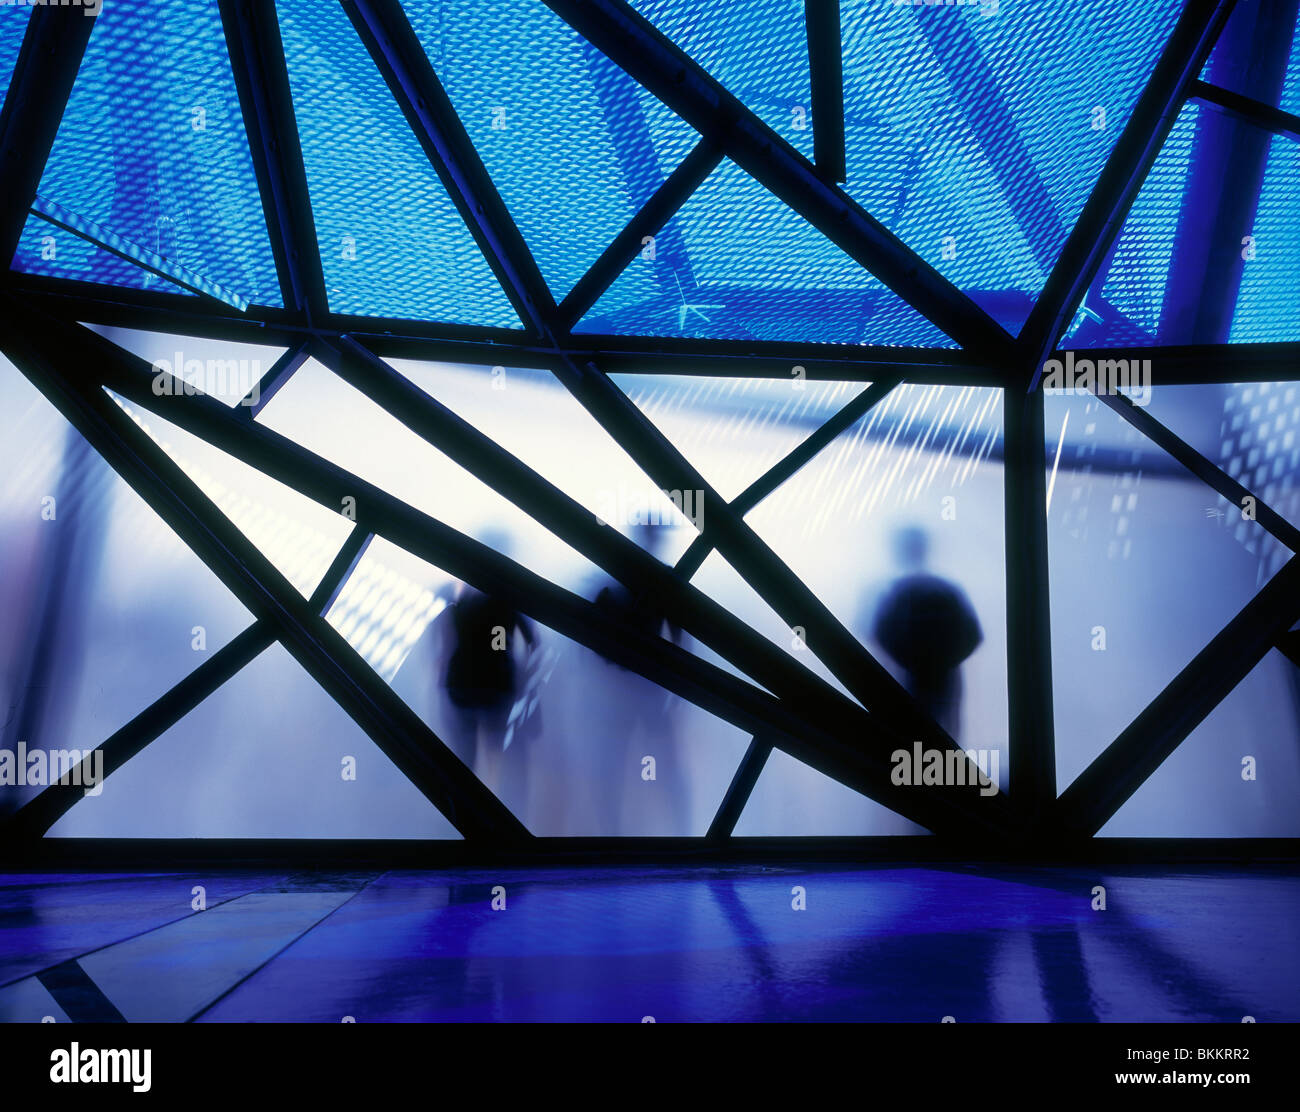 Silhouettes of people in front of futuristically designed pavilion at the Zaragoza, Spain. - Stock Image